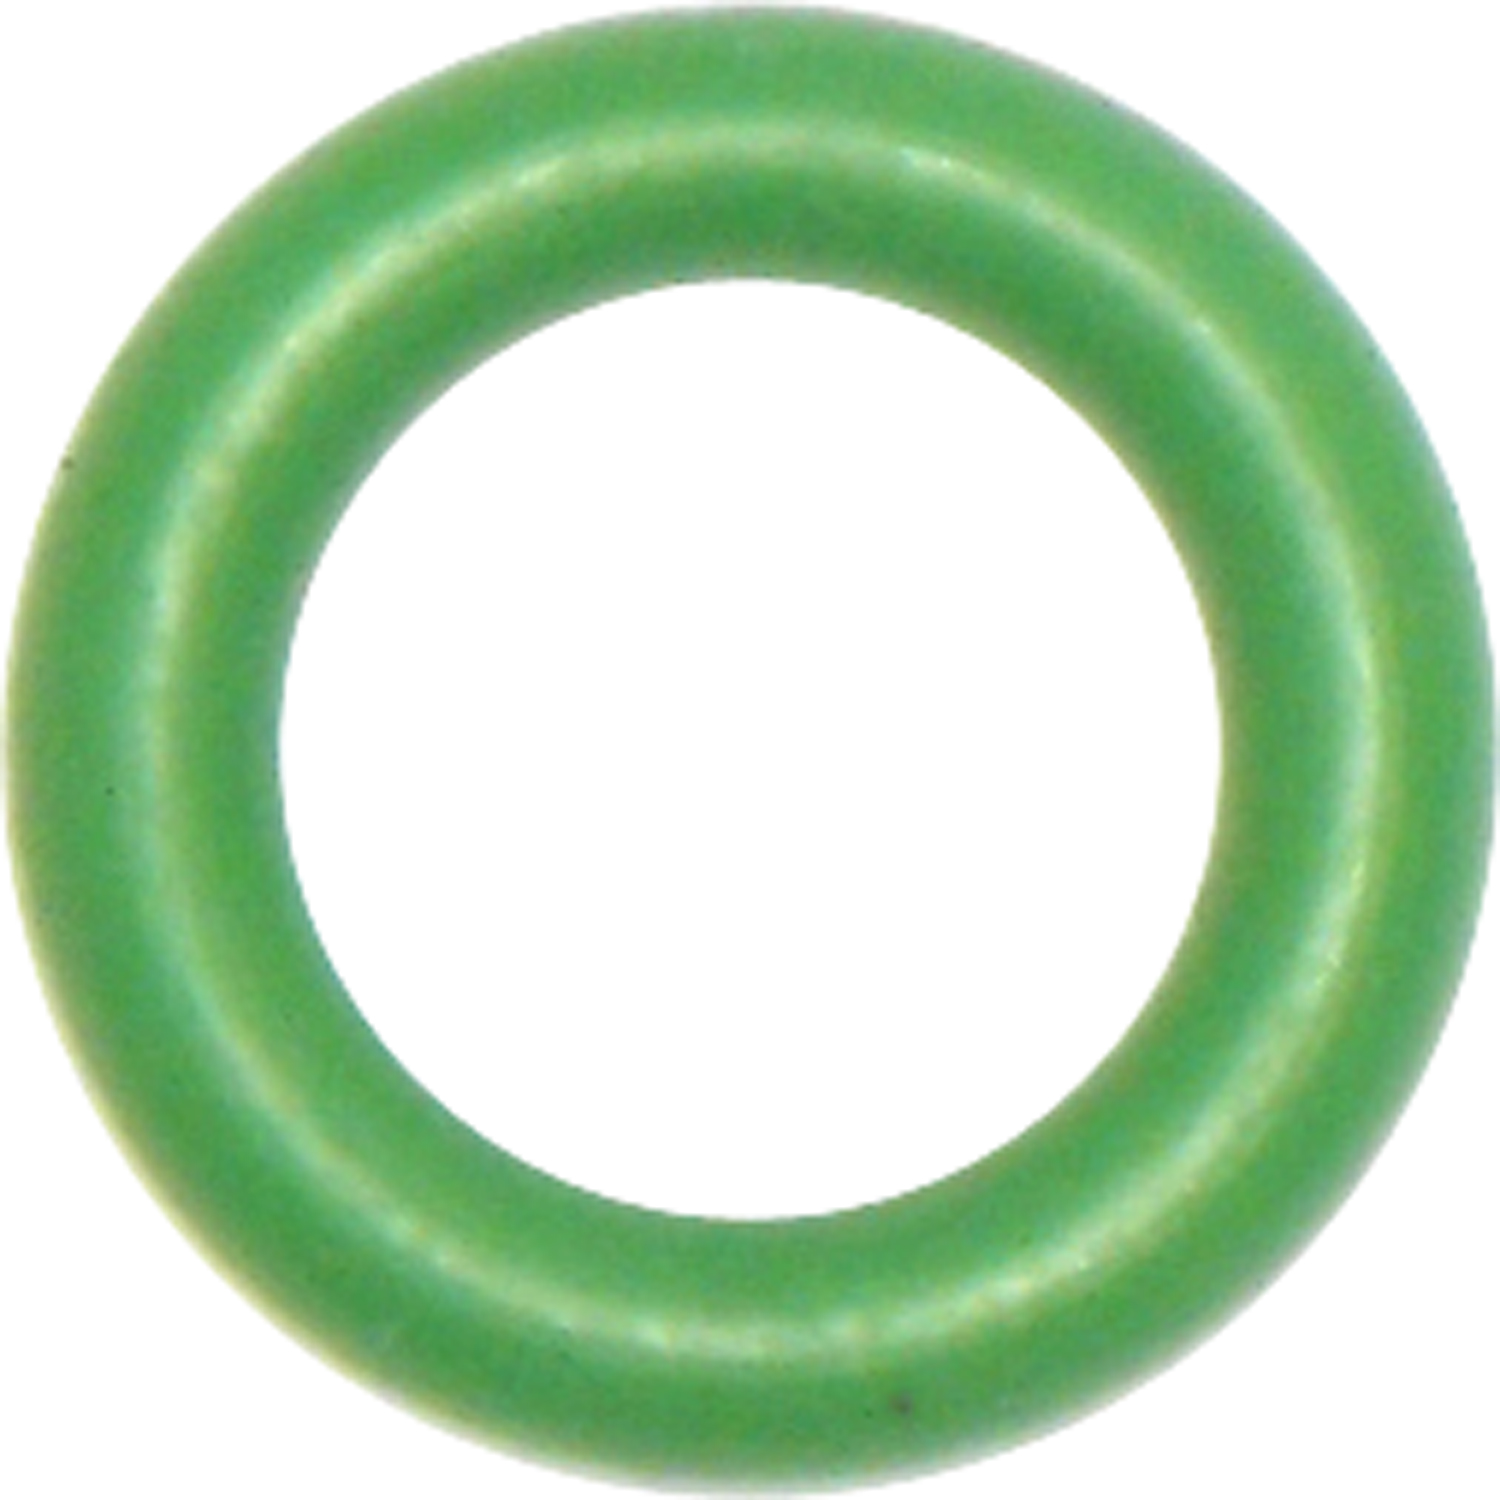 Oring GM OIL TUBE SEAL VIR